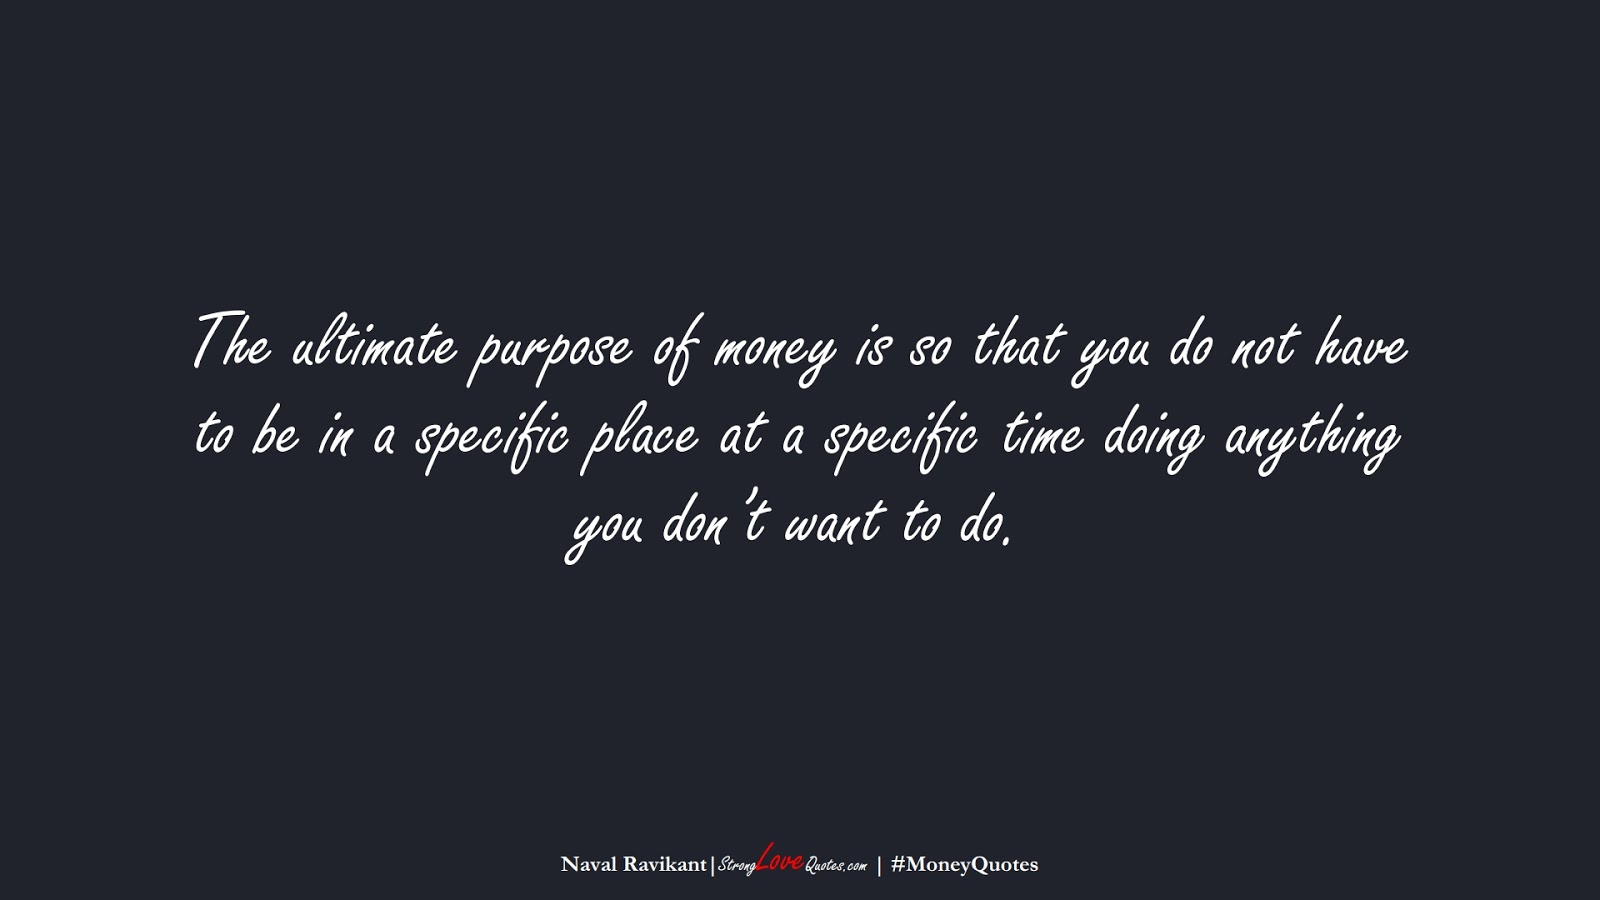 The ultimate purpose of money is so that you do not have to be in a specific place at a specific time doing anything you don't want to do. (Naval Ravikant);  #MoneyQuotes